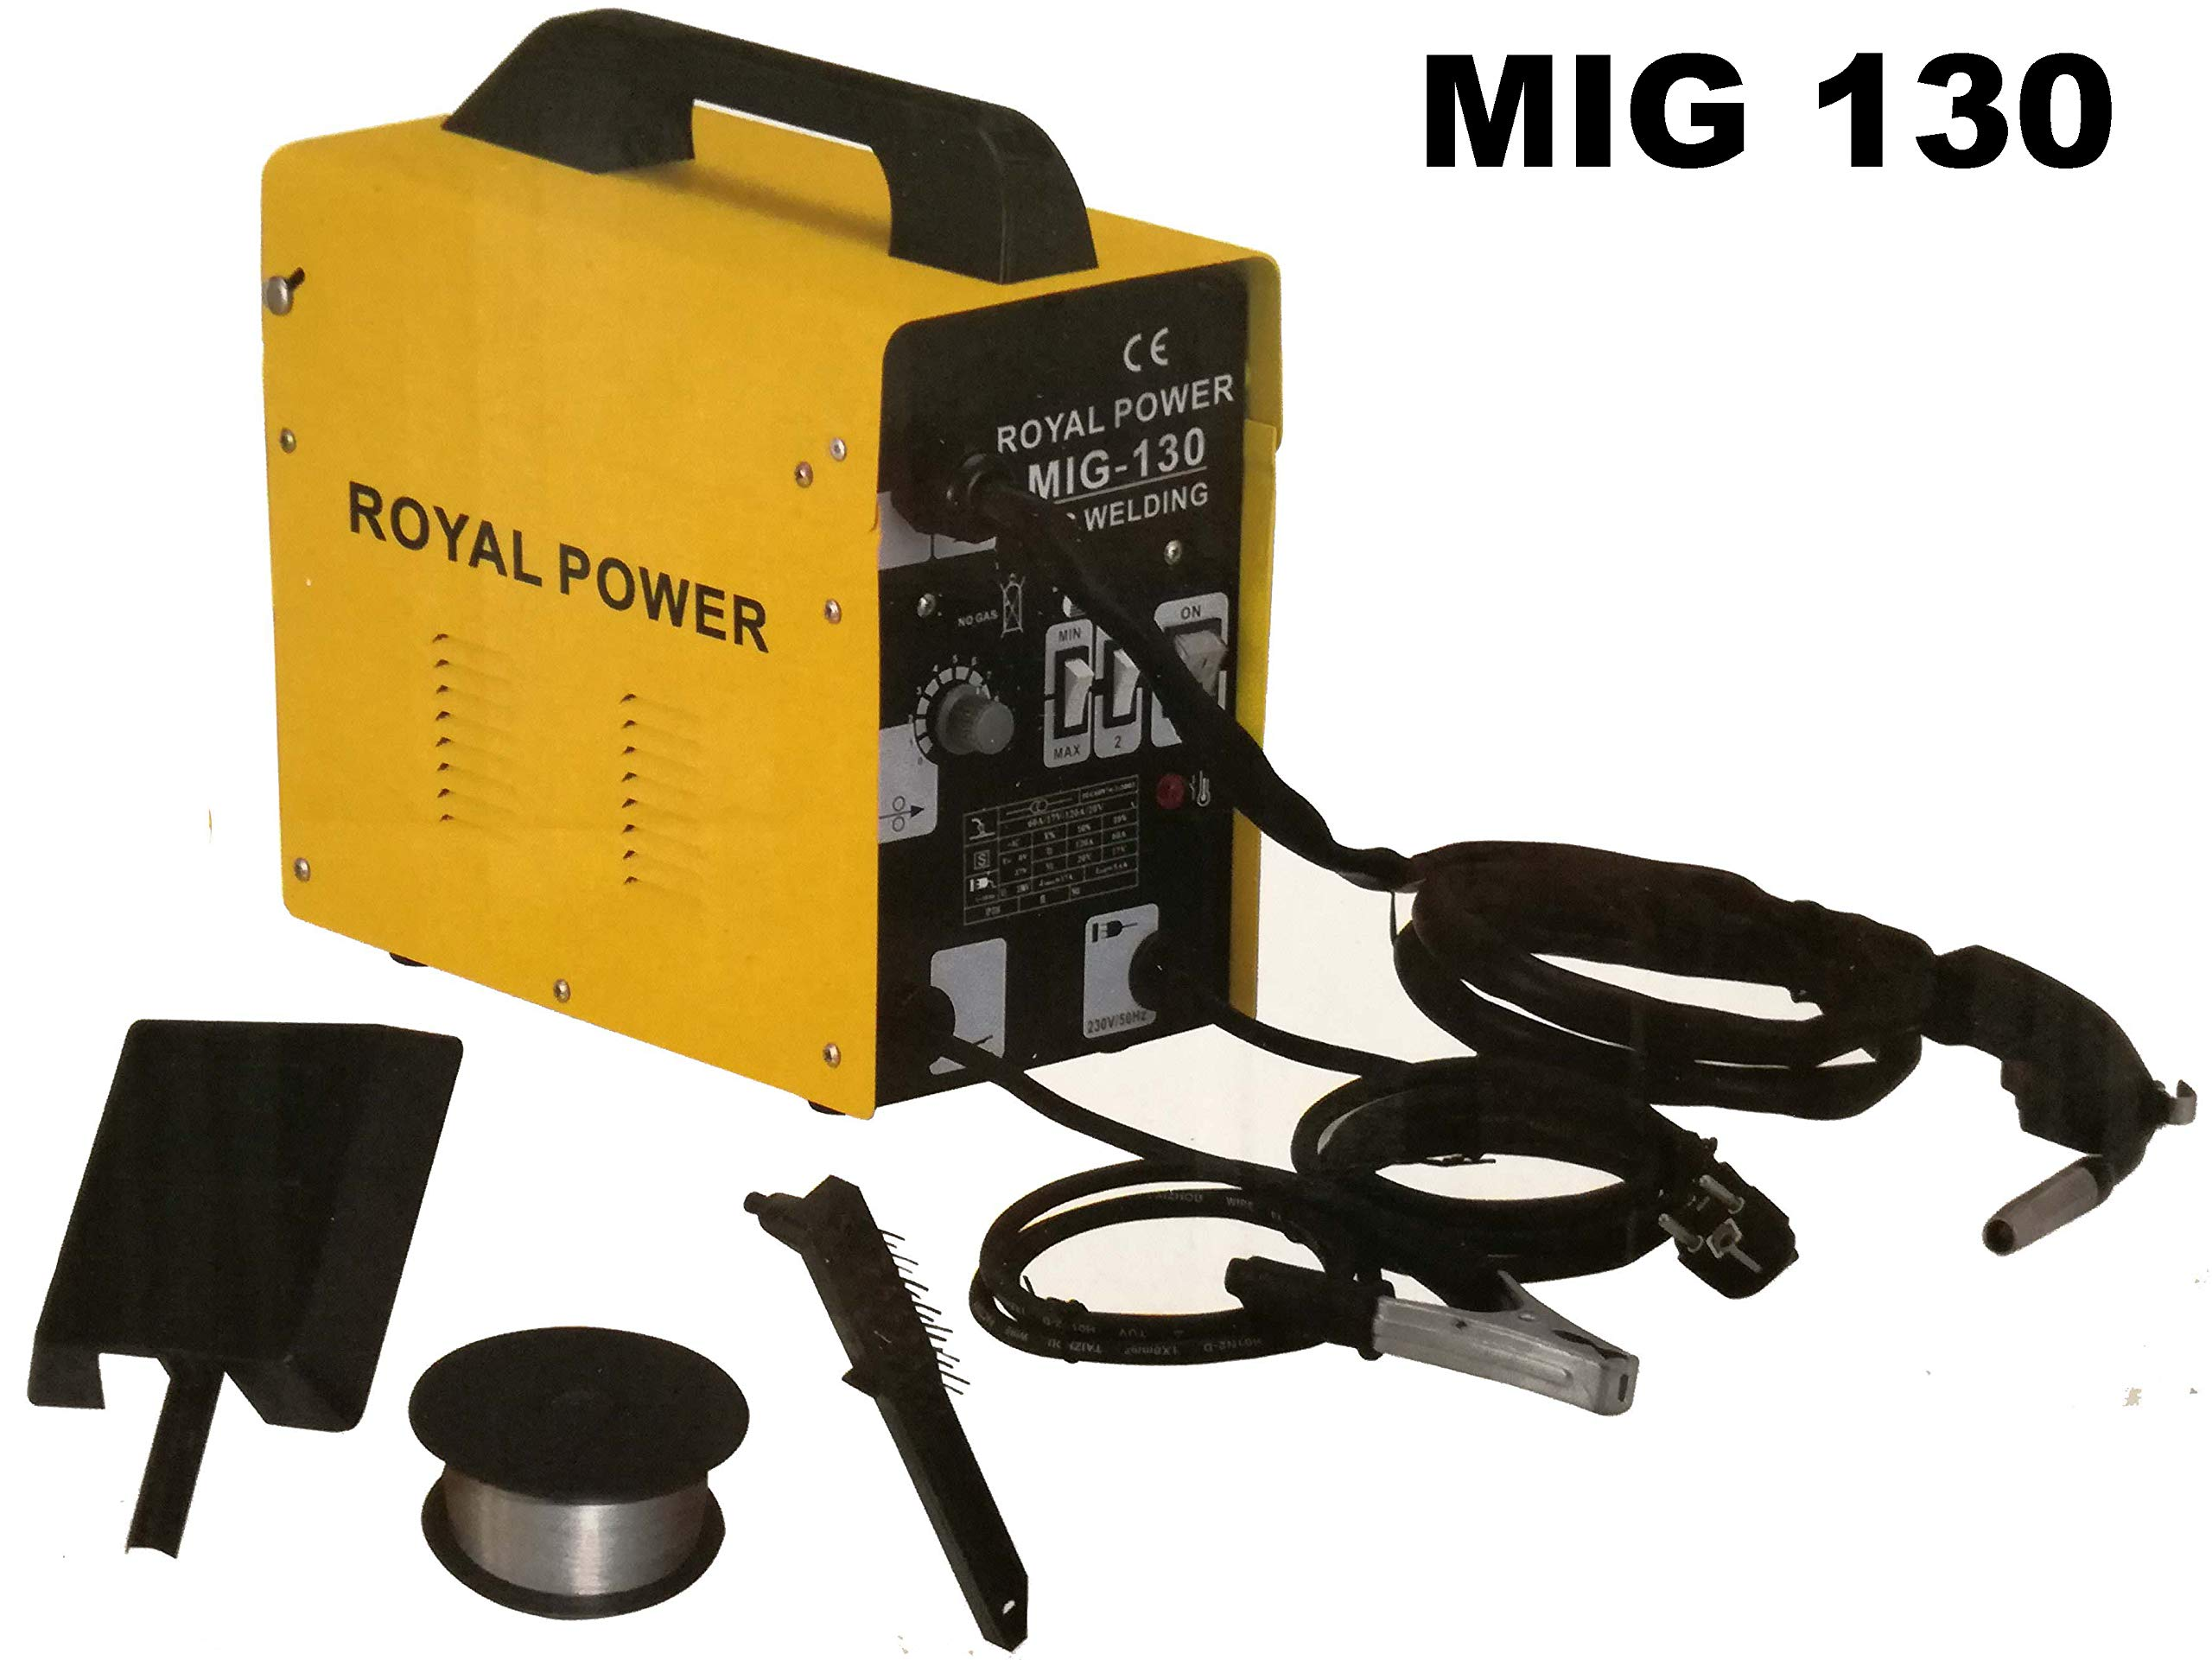 Soldador hilo continuo sin gas MIG 130 A 230V ROYAL POWER product image